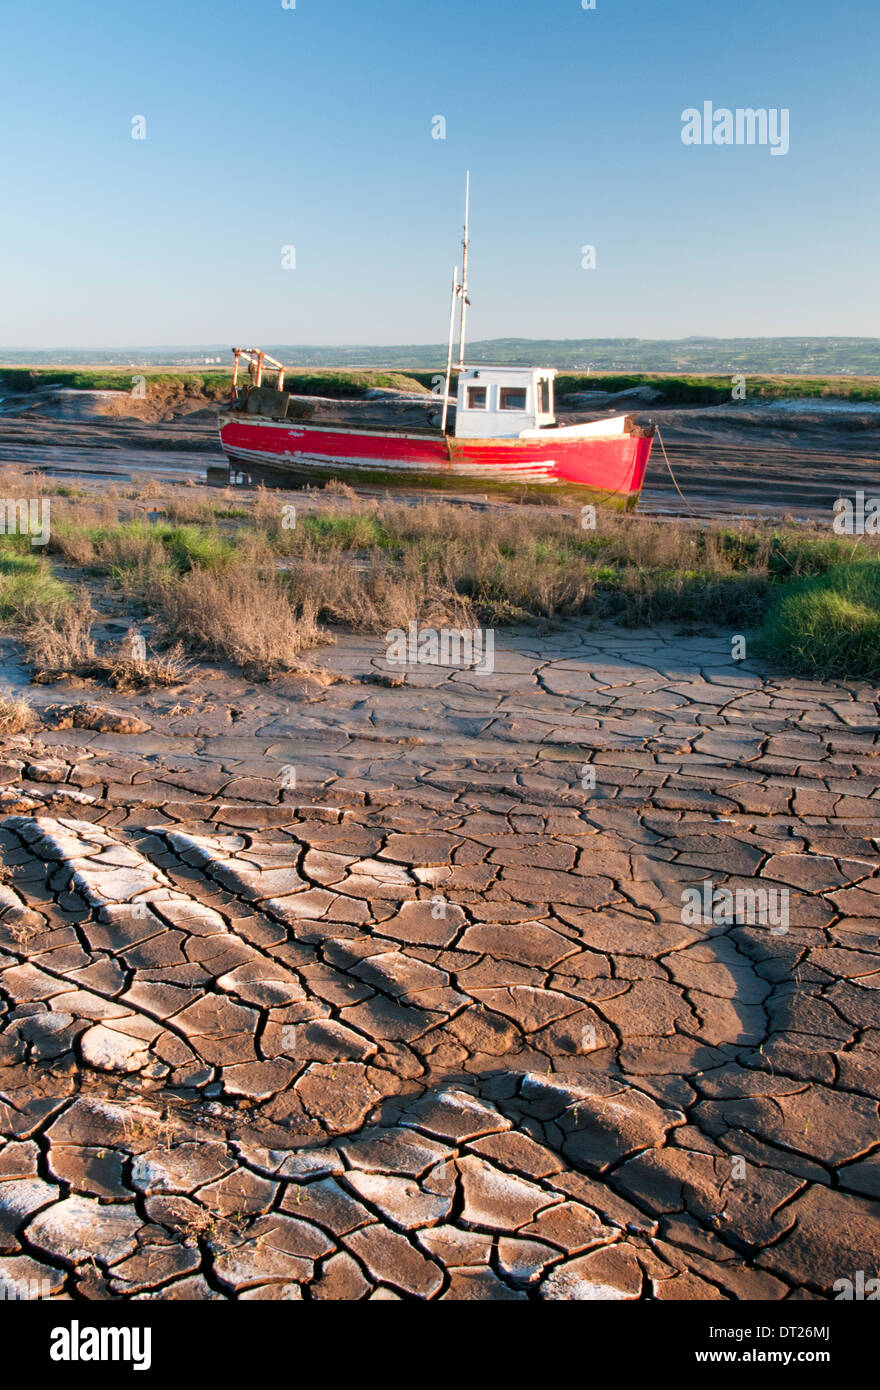 Fishing Boat on Mud Flats of The River Dee, Heswall, The Wirral, Merseyside, England, UK - Stock Image